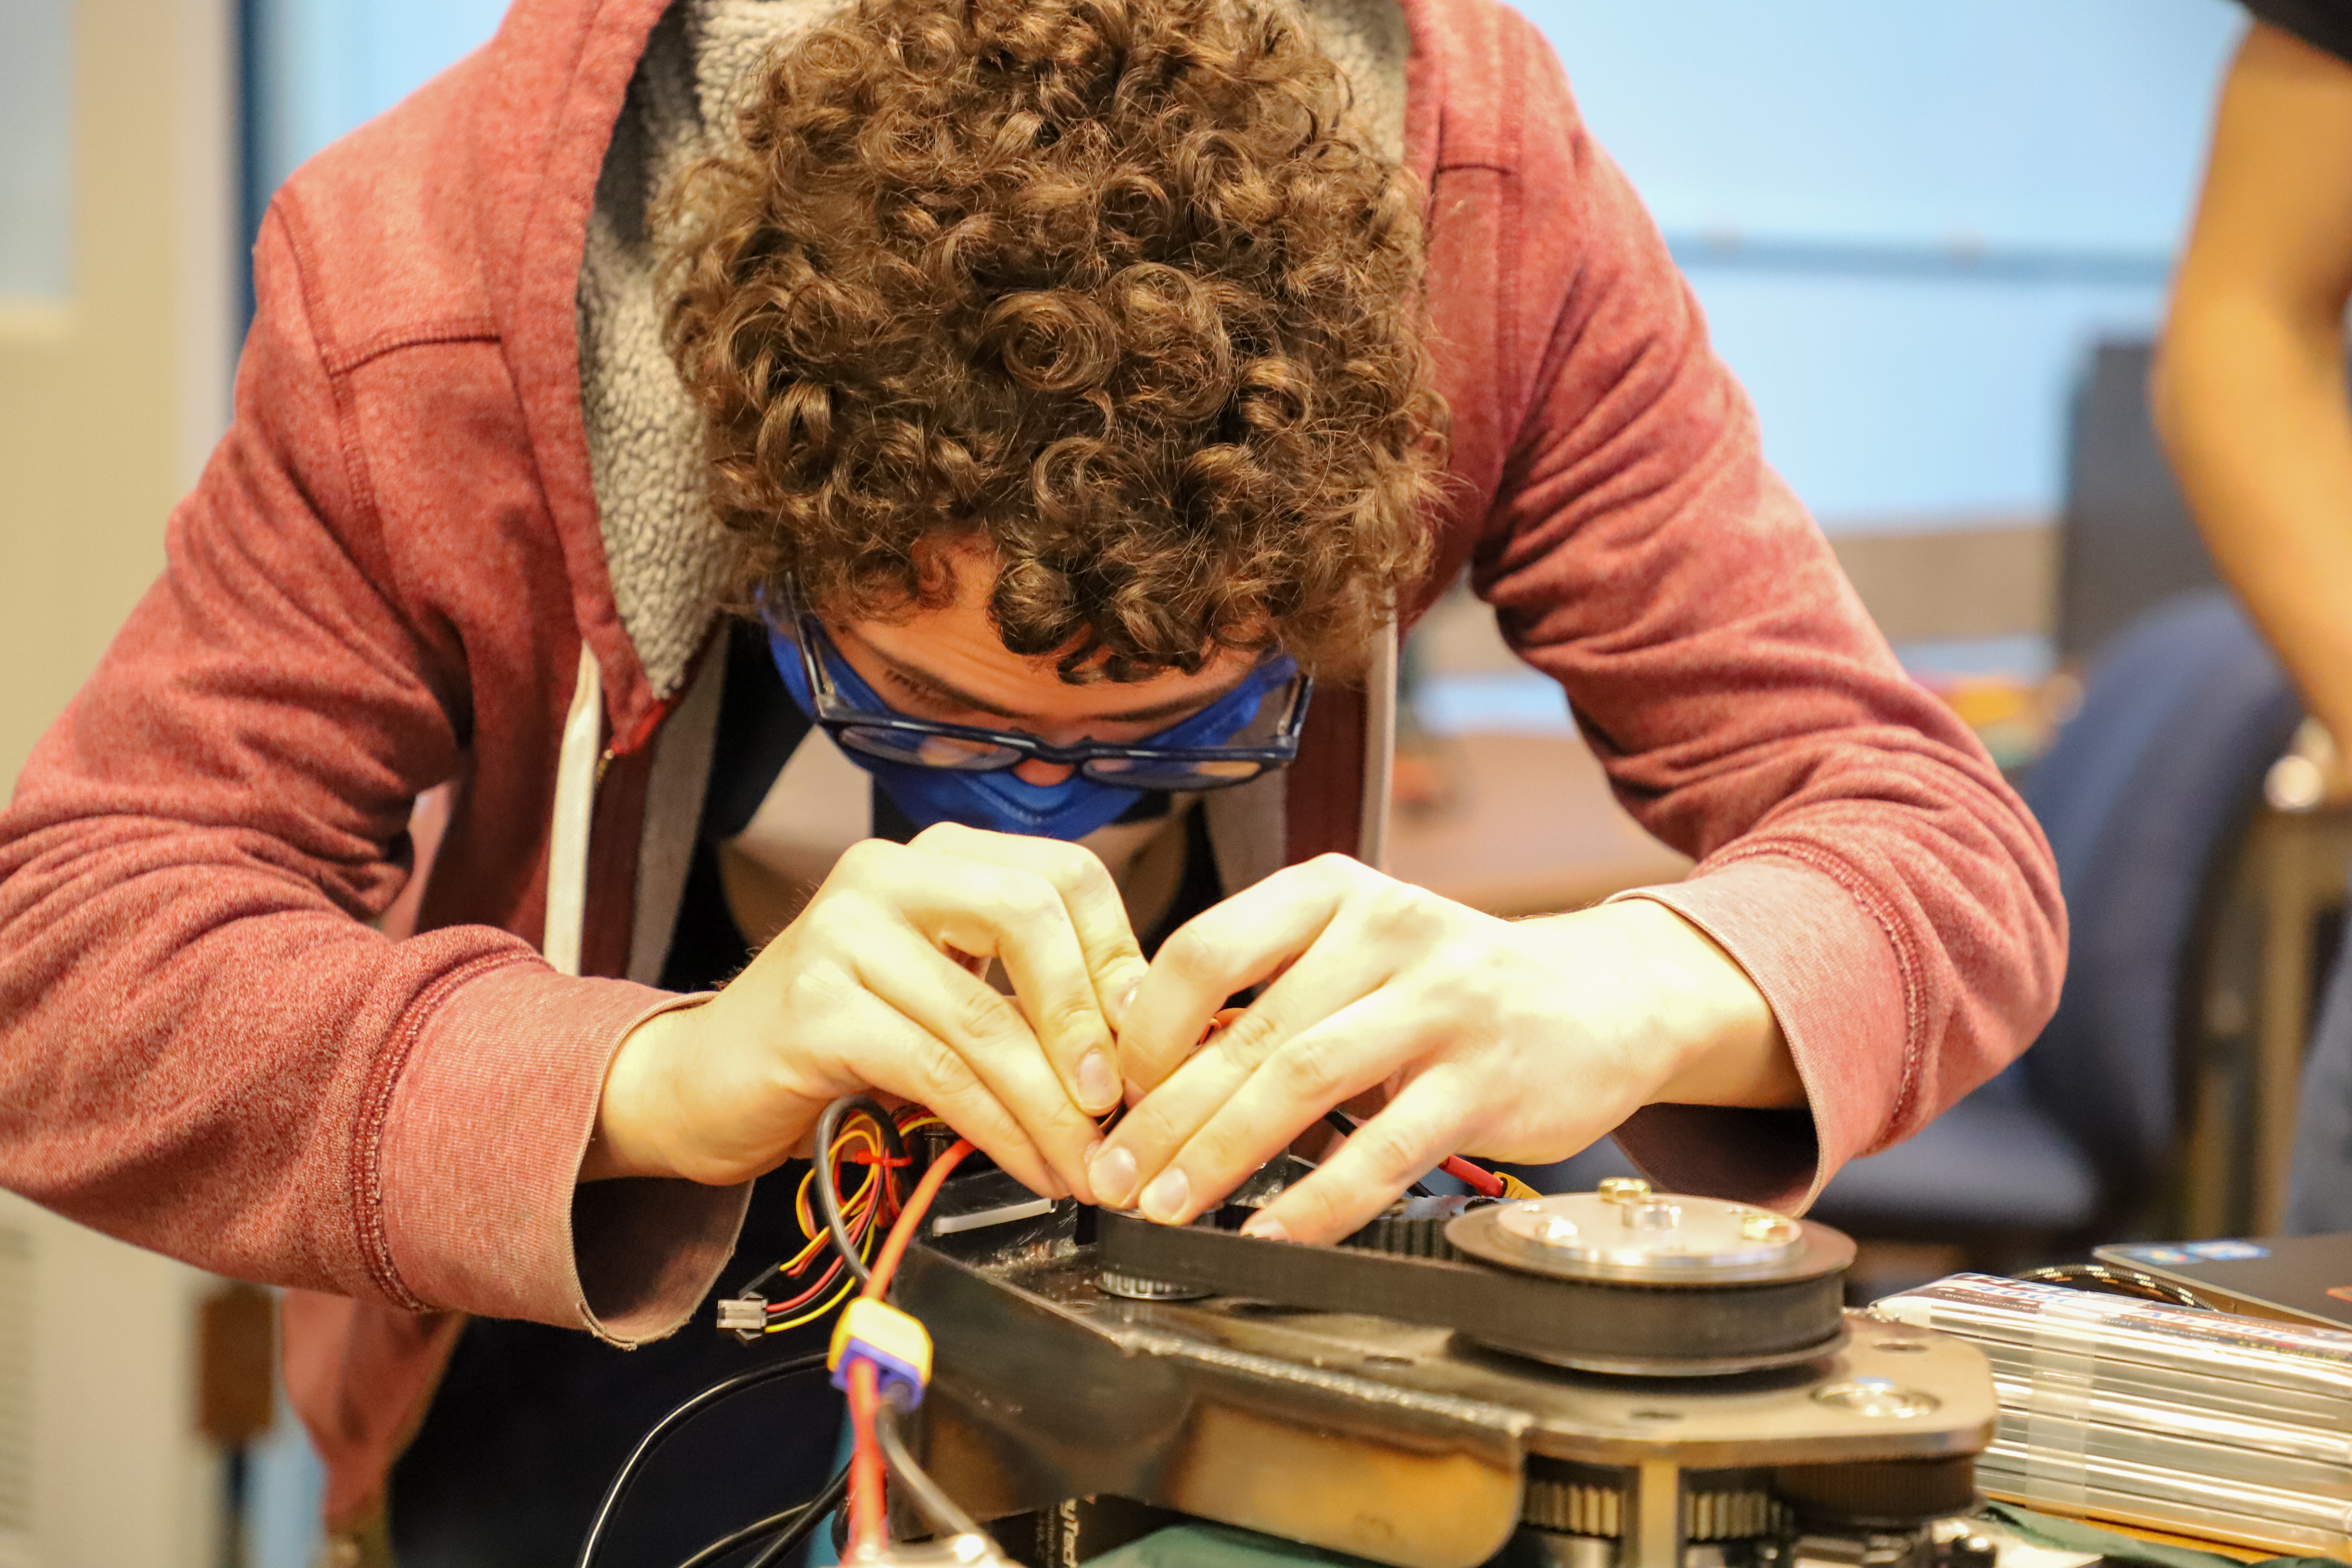 A Kettering University student works on the wiring of the robot's wheel.